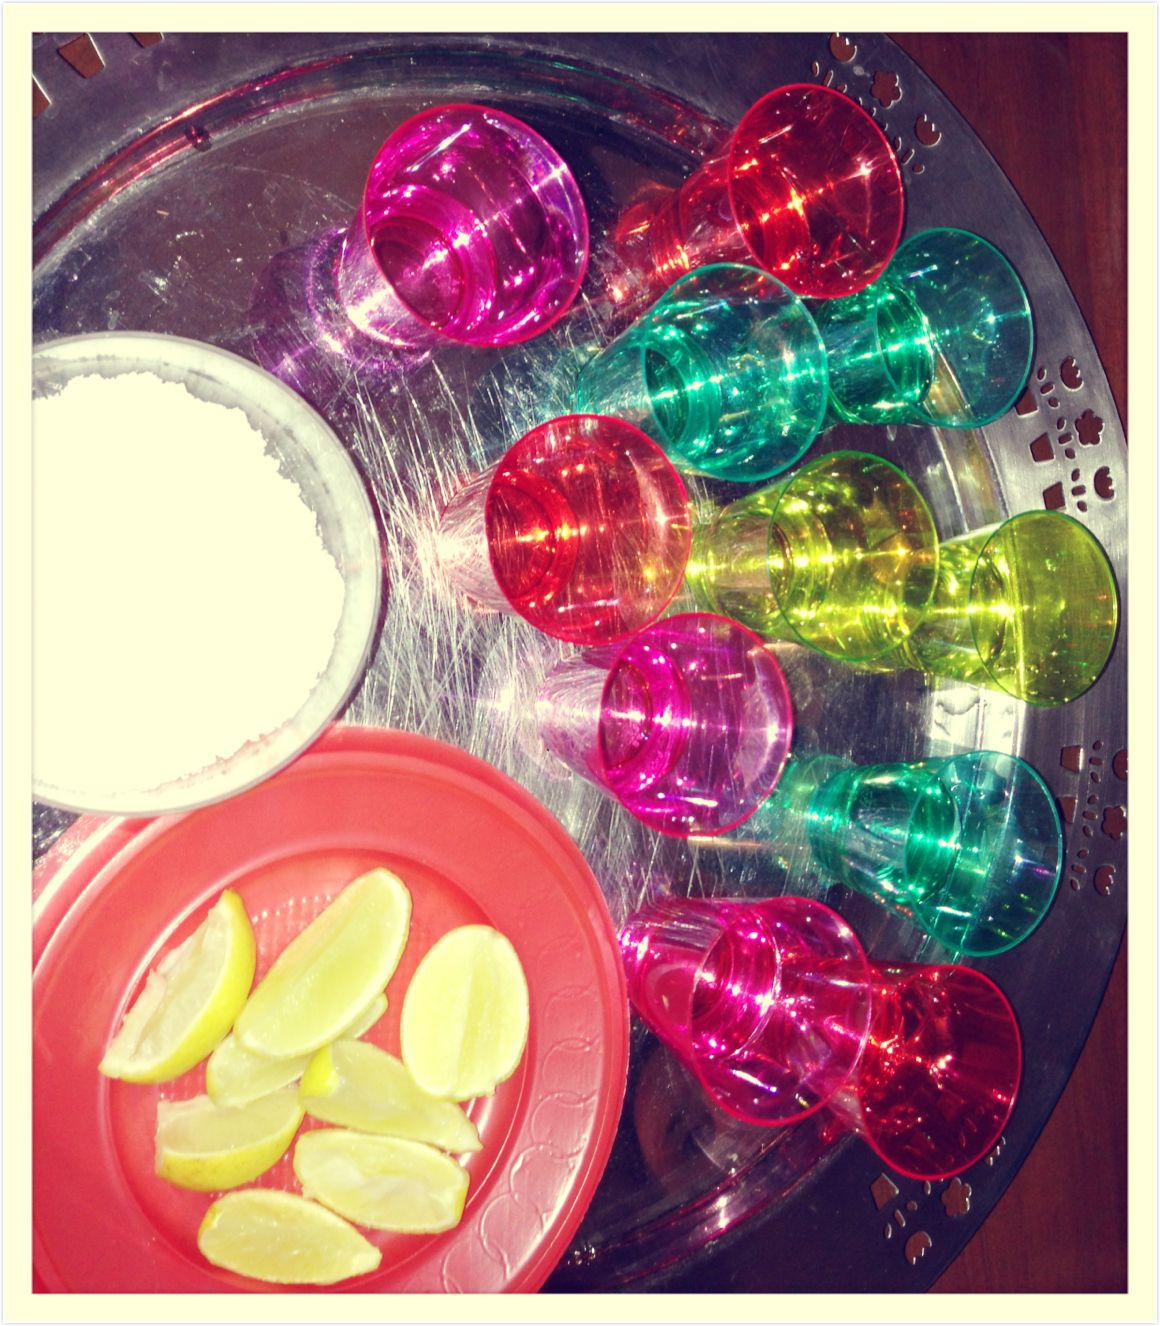 Tequila shots in colored shot glasses & limes